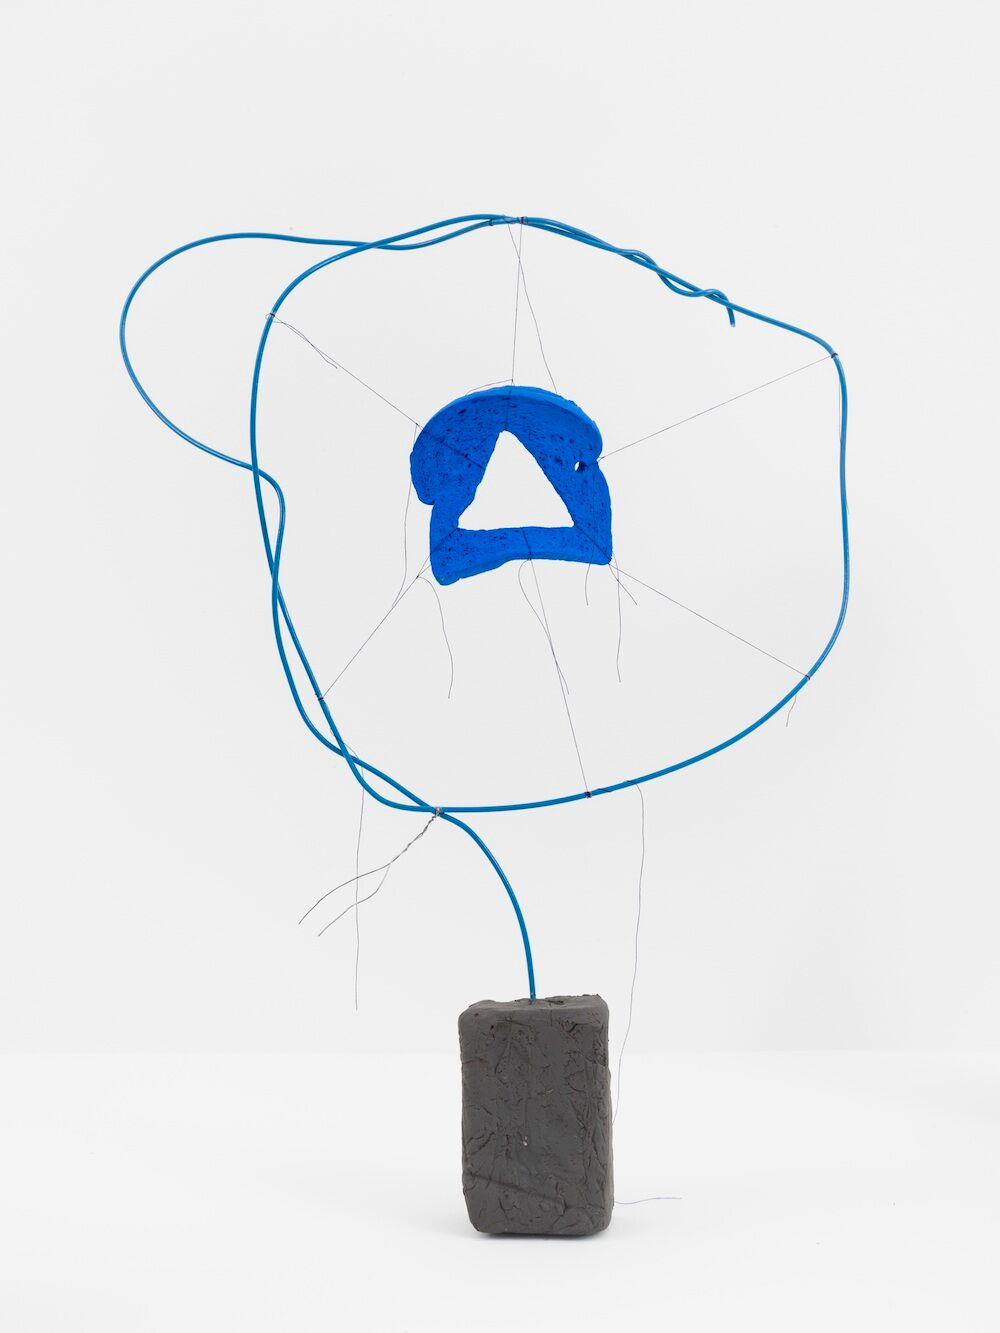 Michelle Segre, Driftloaf (Blue Triangle), 2015